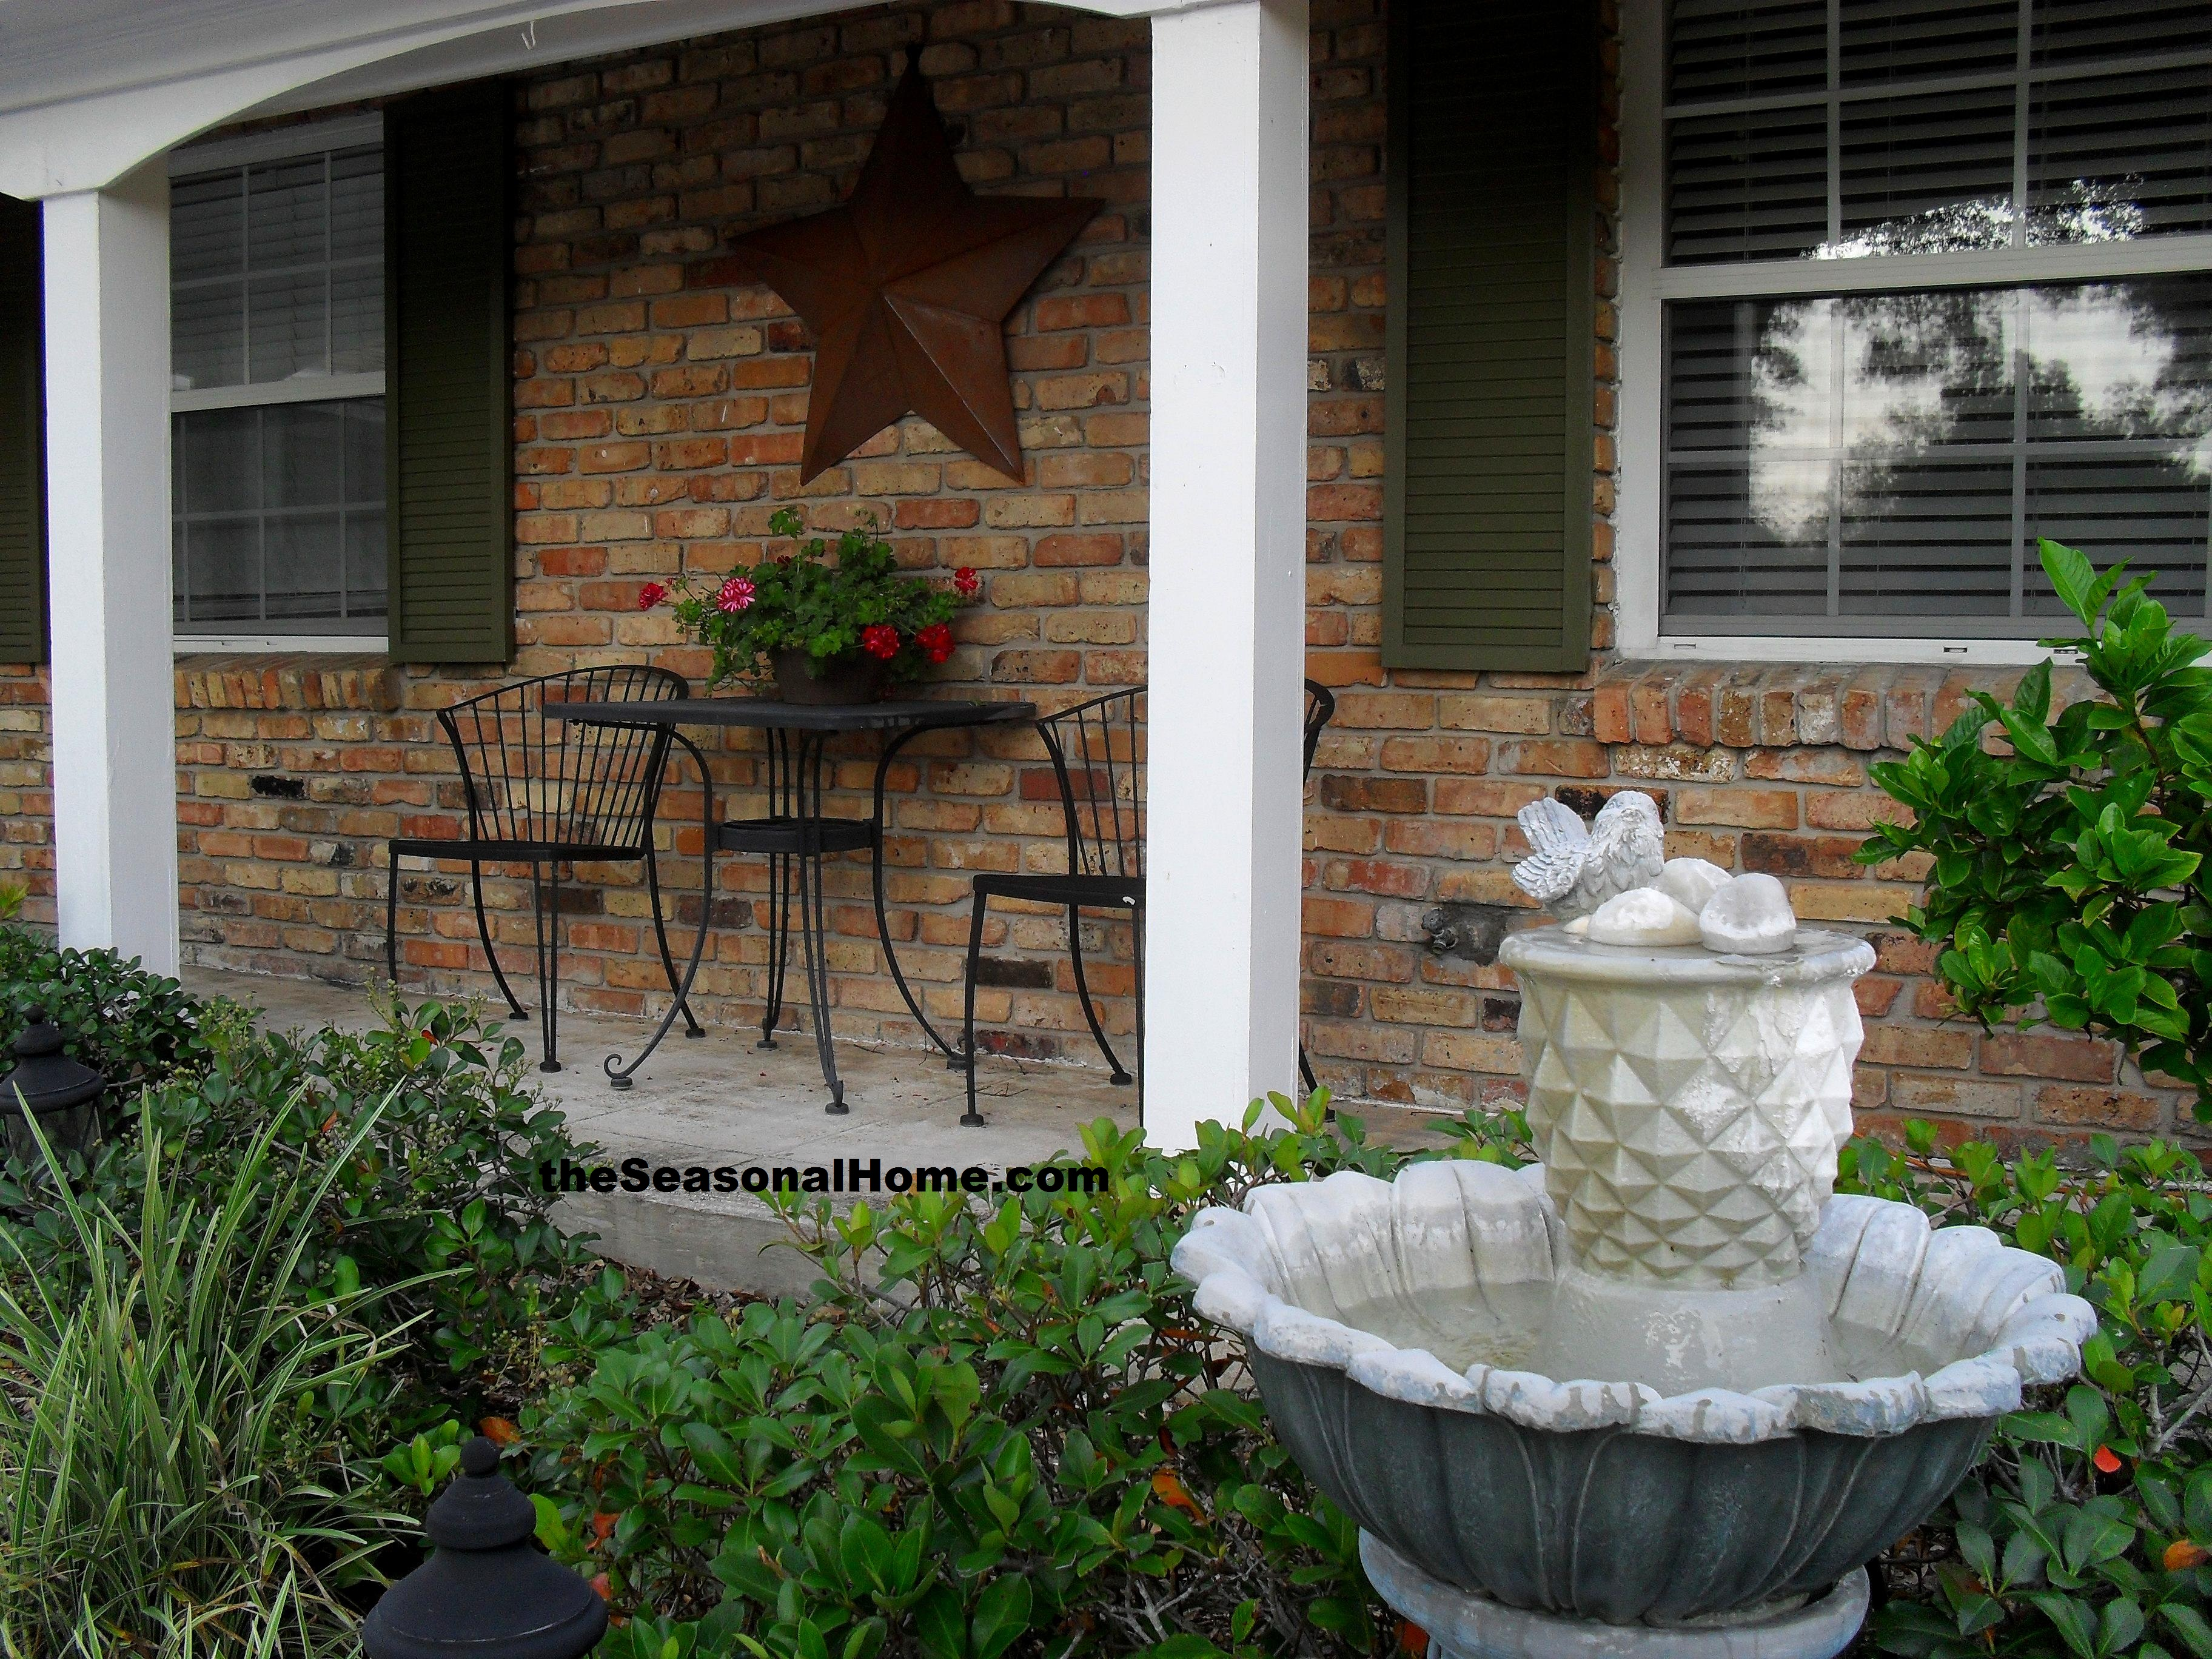 Ideas For Your Summer Yard The Seasonal Home